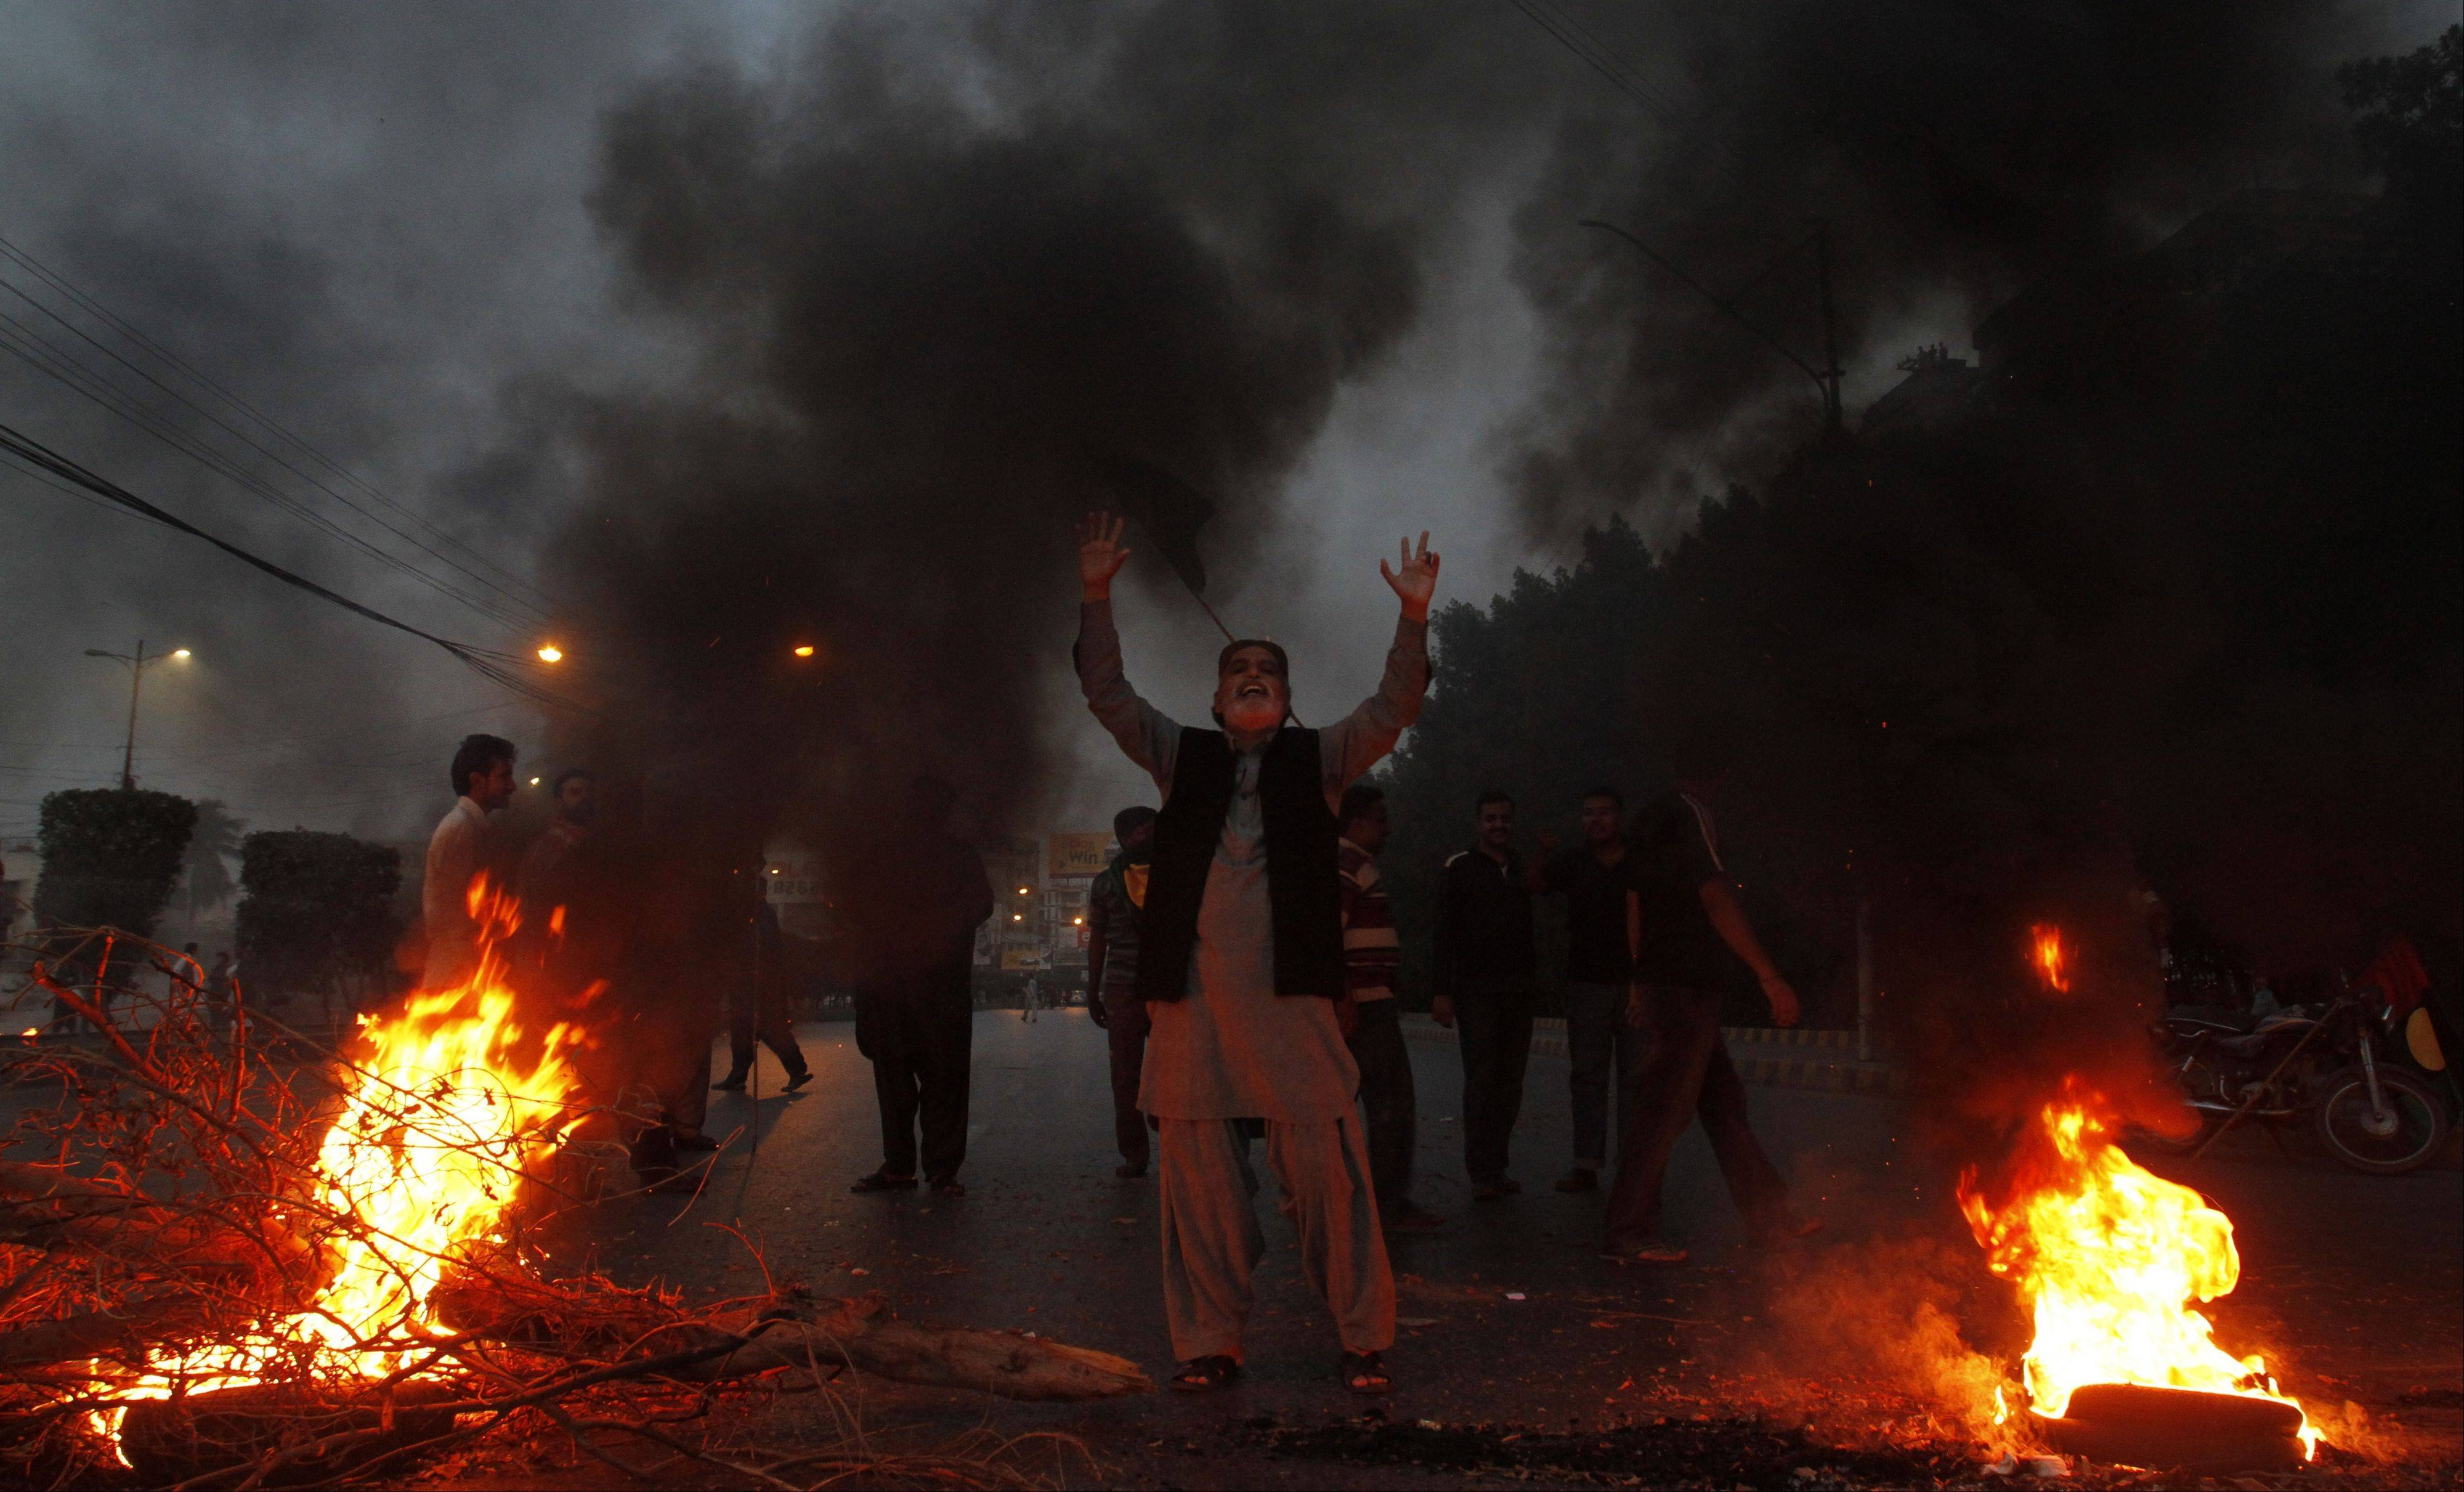 Supporters of Pakistan's ruling People's party burn tires to condemn a Supreme Court's order to arrest Prime Minister Raja Pervez Ashraf, in Karachi, Pakistan on Tuesday.